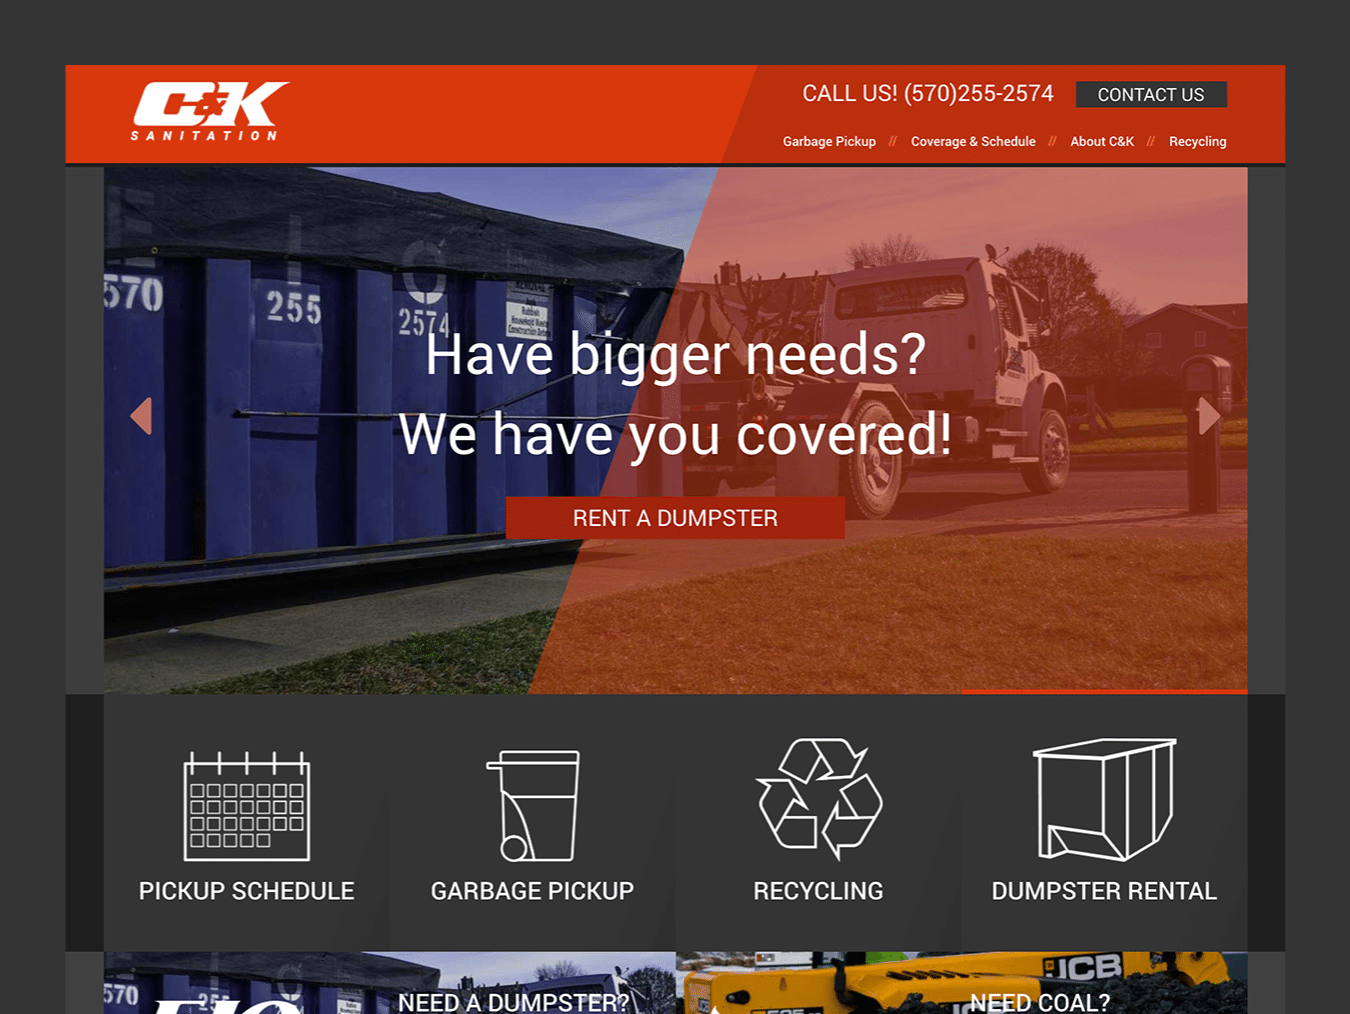 Service Company Web Design – C&K Sanitation (Thumbnail Design)